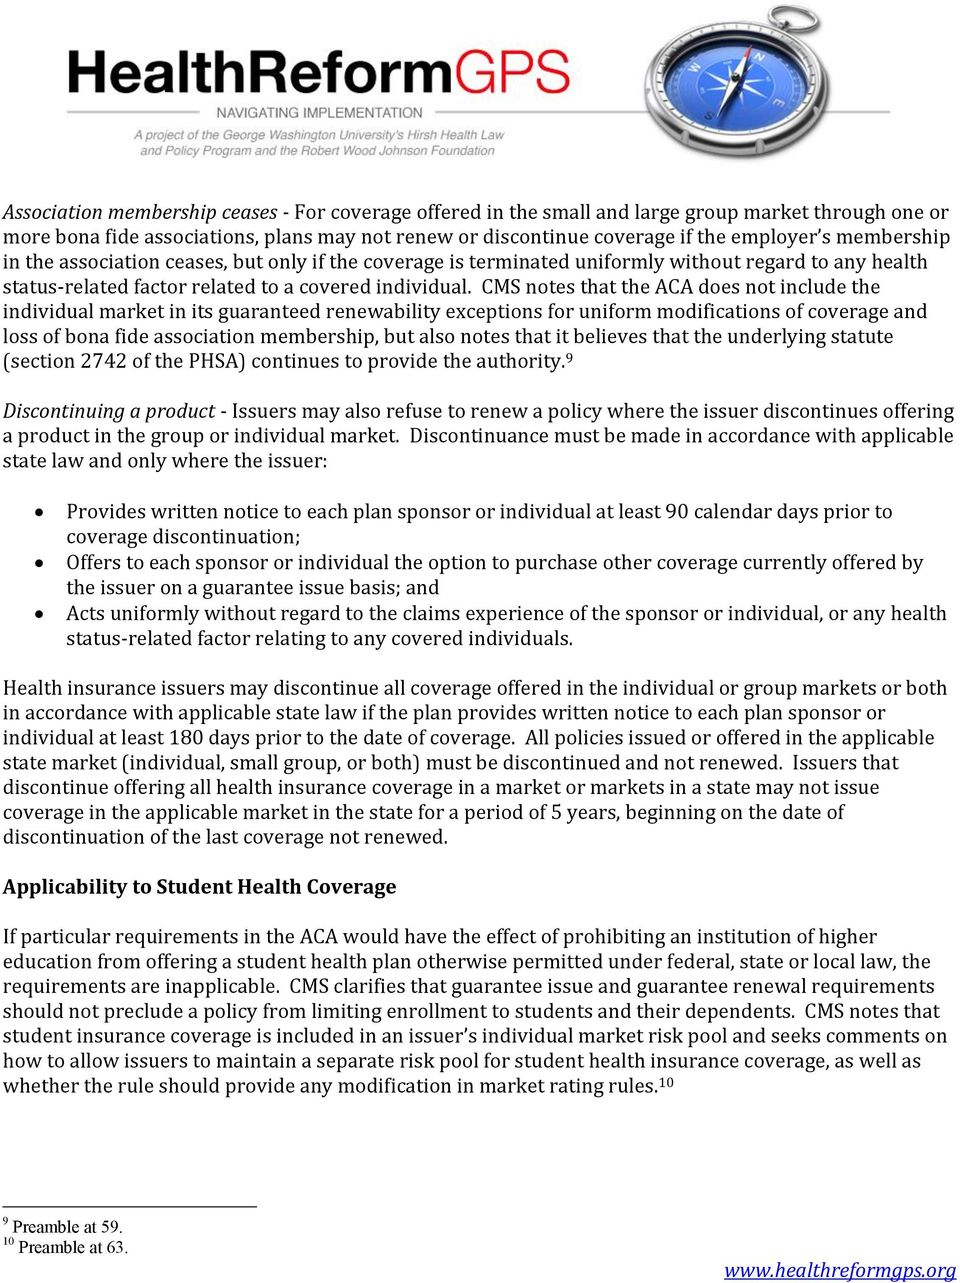 CMS notes that the ACA does not include the individual market in its guaranteed renewability exceptions for uniform modifications of coverage and loss of bona fide association membership, but also